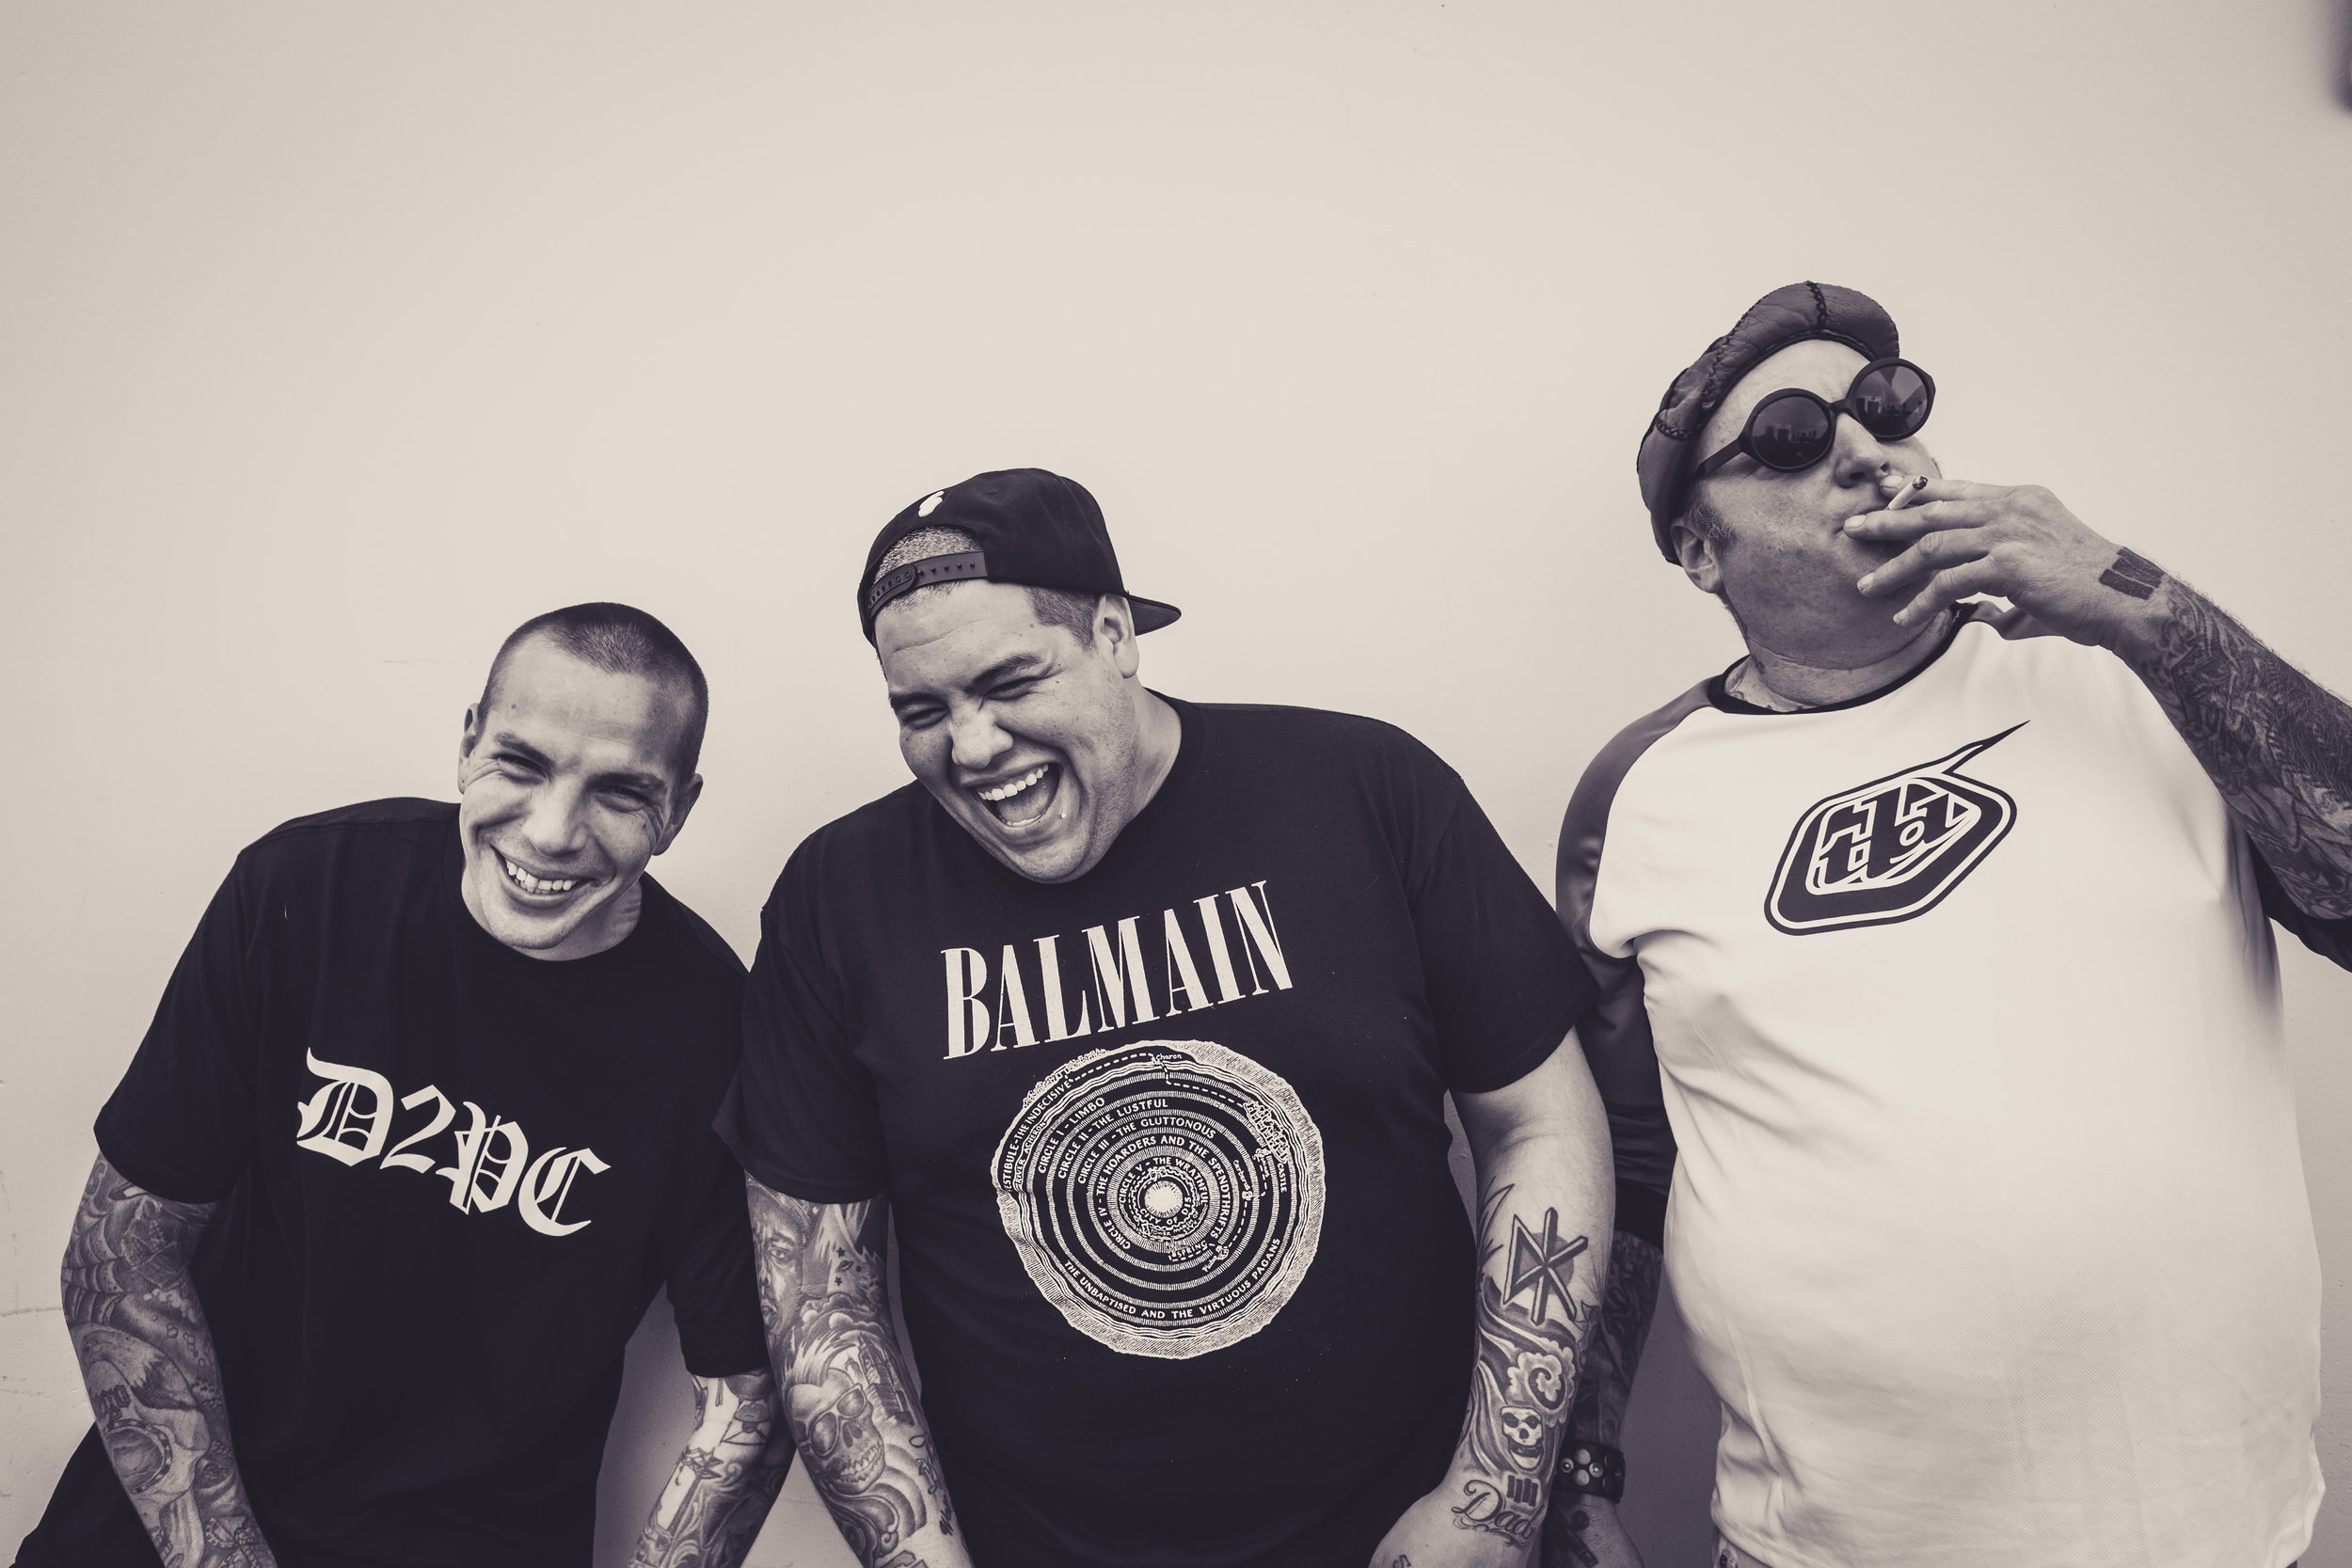 Sublime with Rome. Photo Credit: Andreas Ramierez